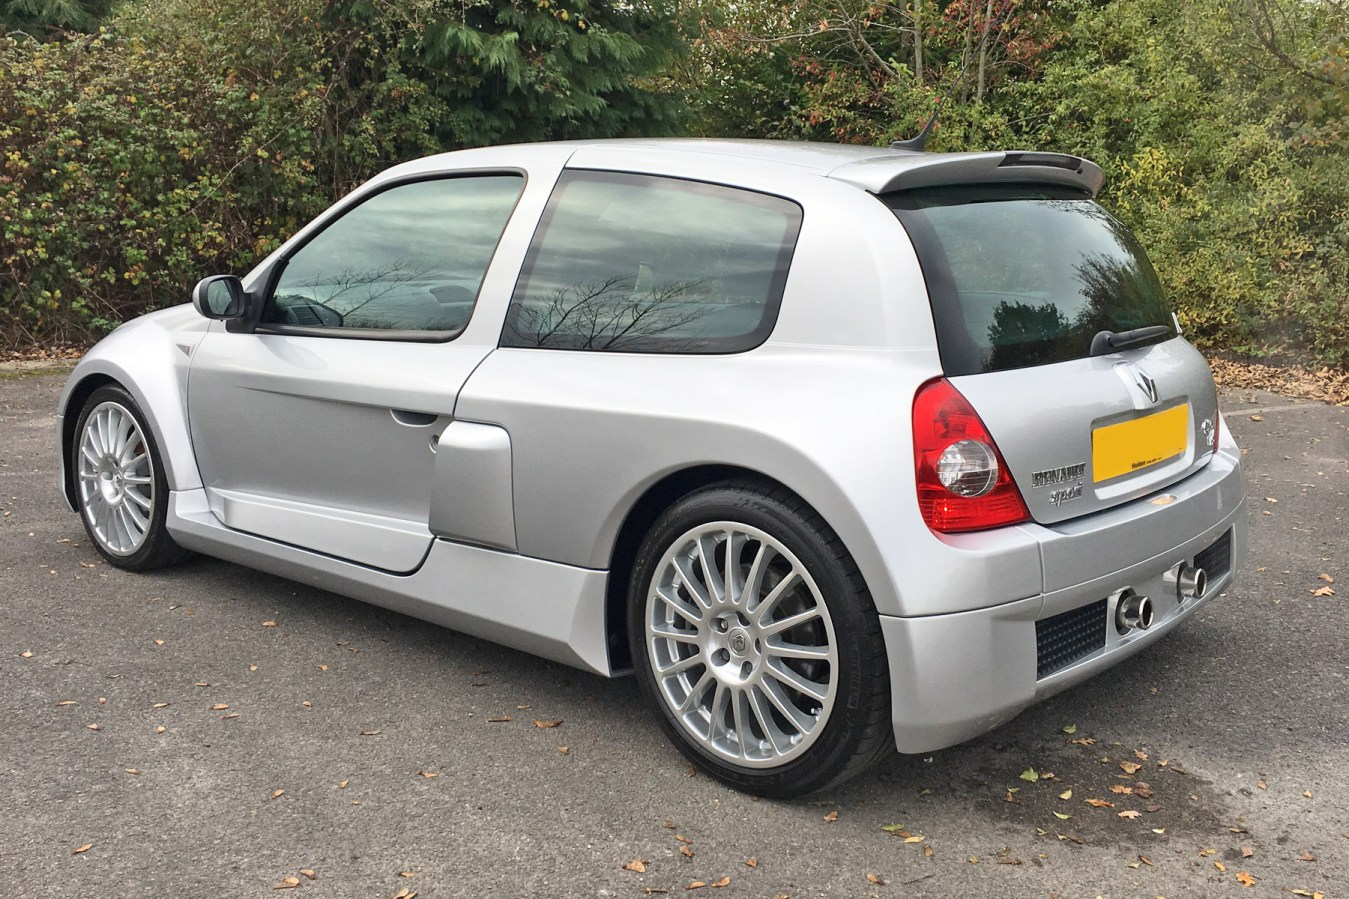 renault clio v6 retro road test motoring research. Black Bedroom Furniture Sets. Home Design Ideas